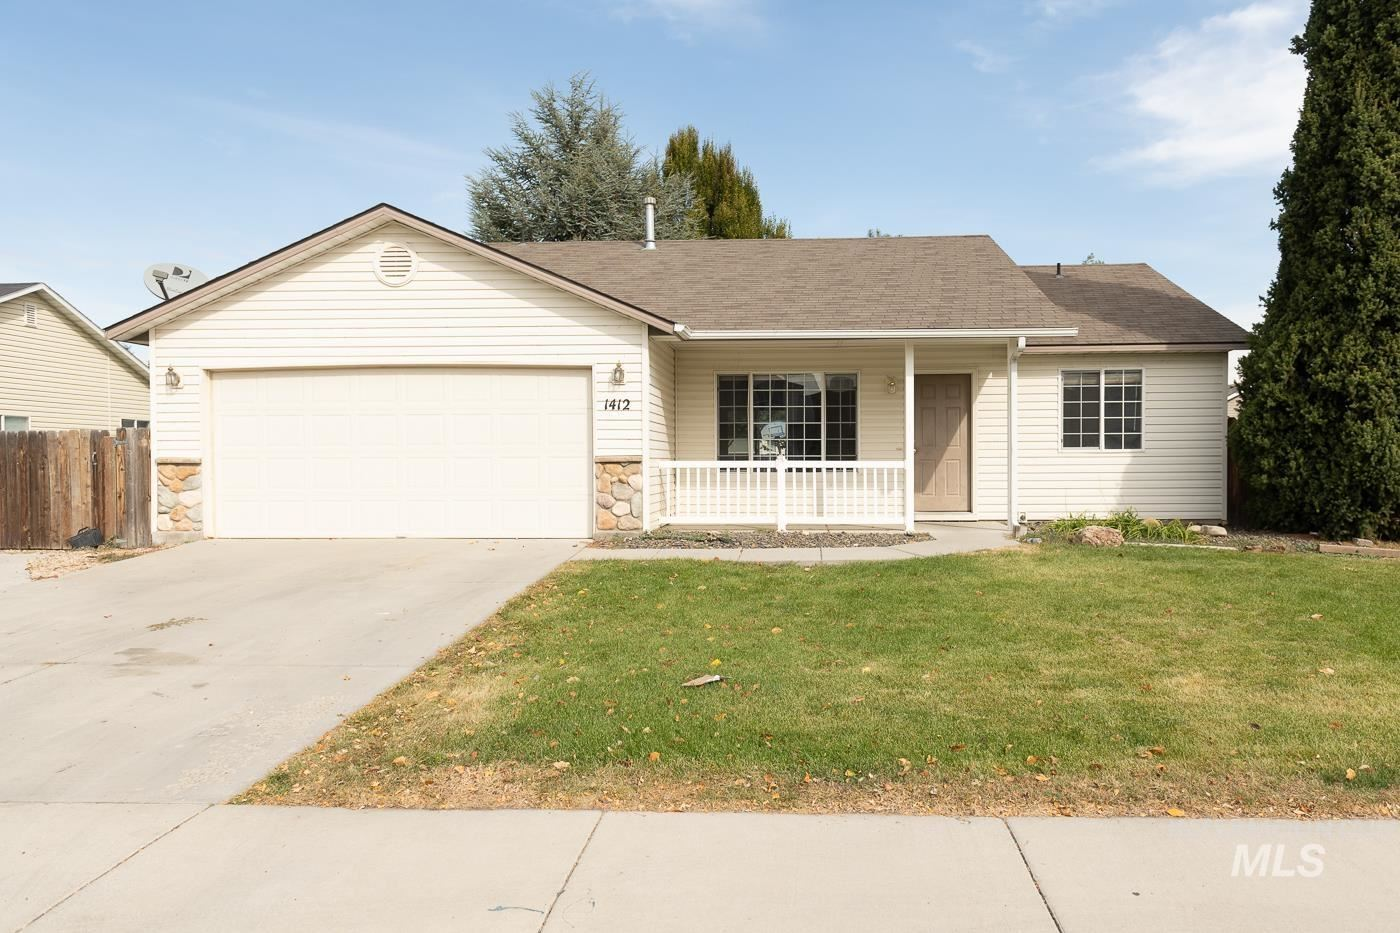 1412 W Young Ave, Nampa, ID 83651 - MLS#: 98821866